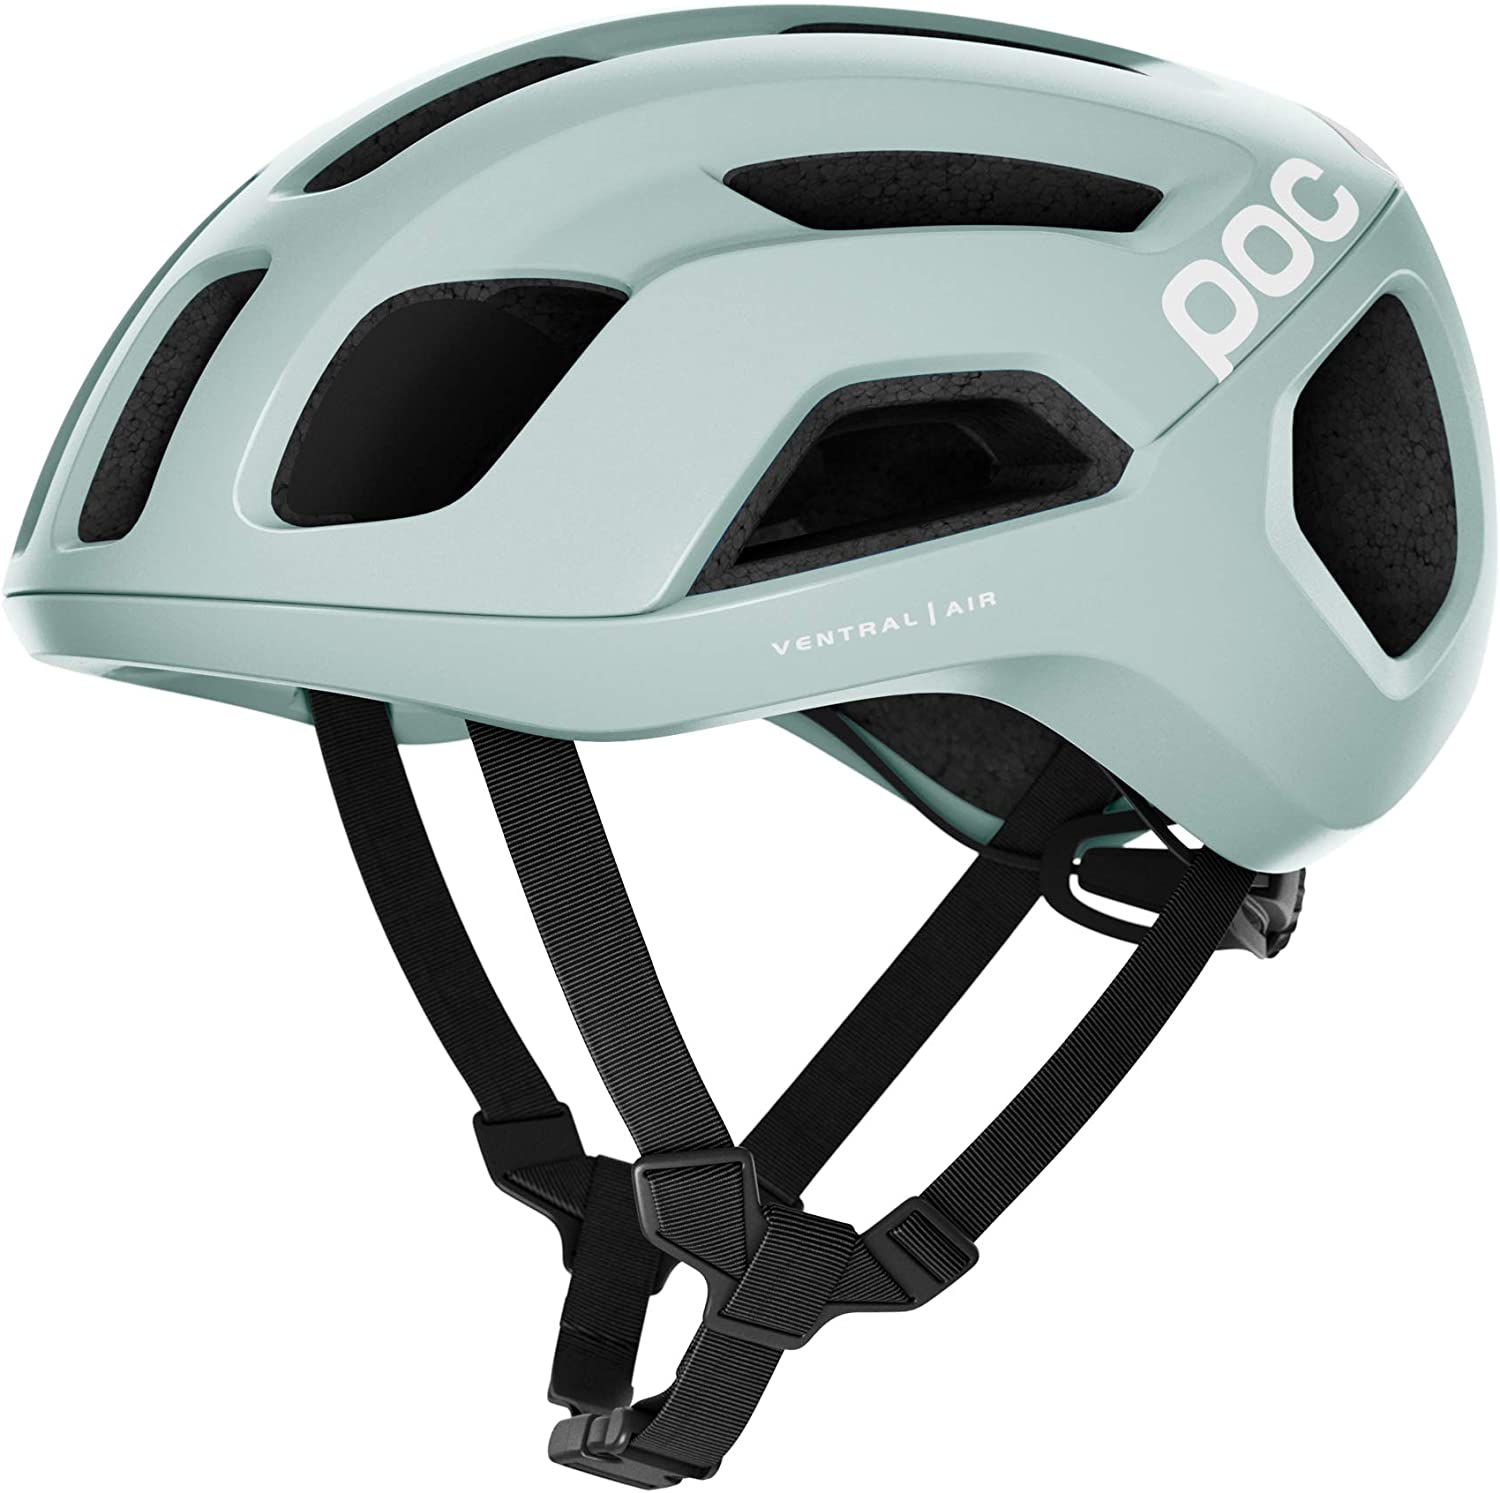 Ventral Air Spin Bike Helmet for Road Cycling POC